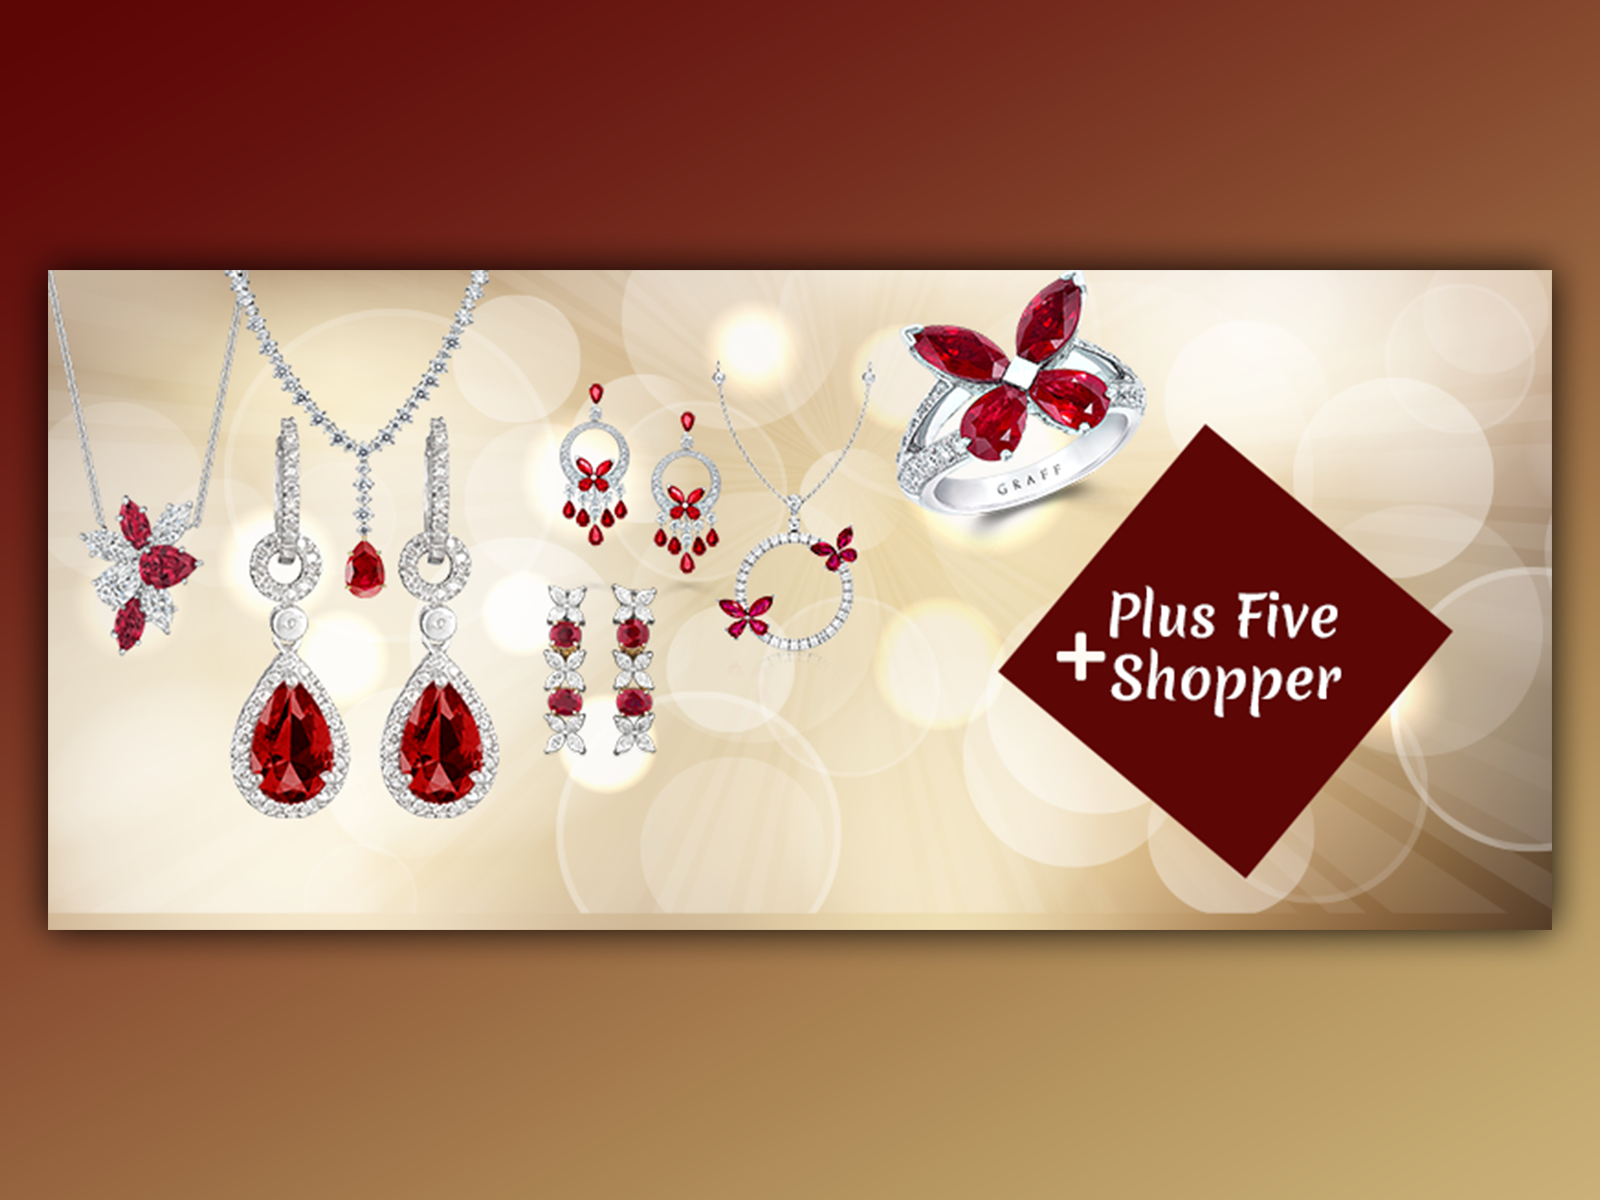 Plus Five Shopper S Facebook Cover By Rinki Khanam On Dribbble